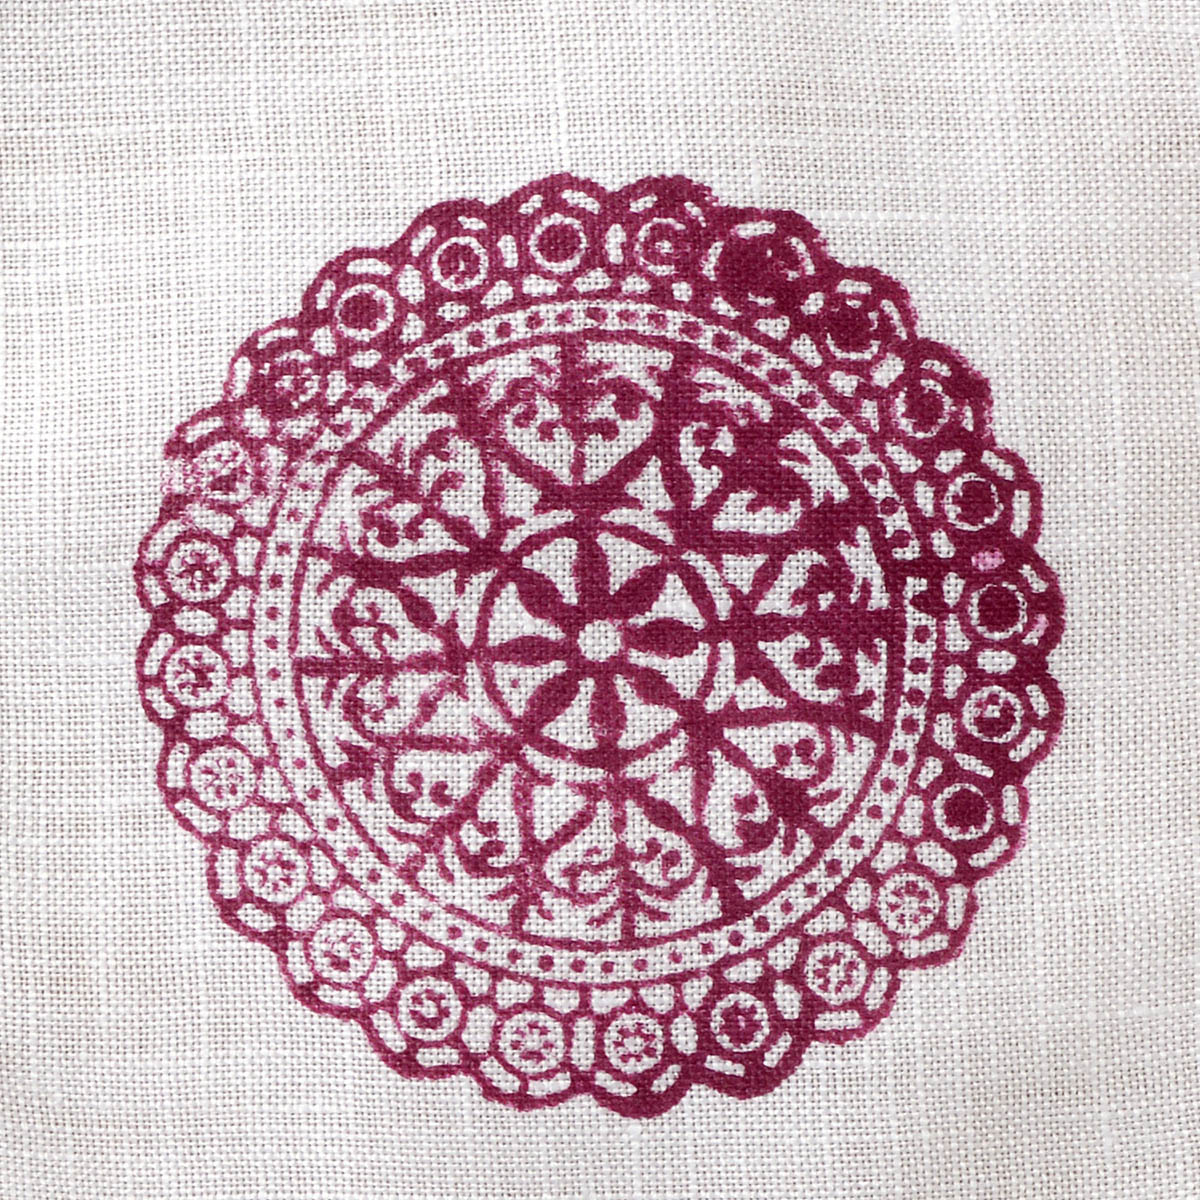 Fabric Creations™ Block Printing Stamps - Medium - Lace Doily